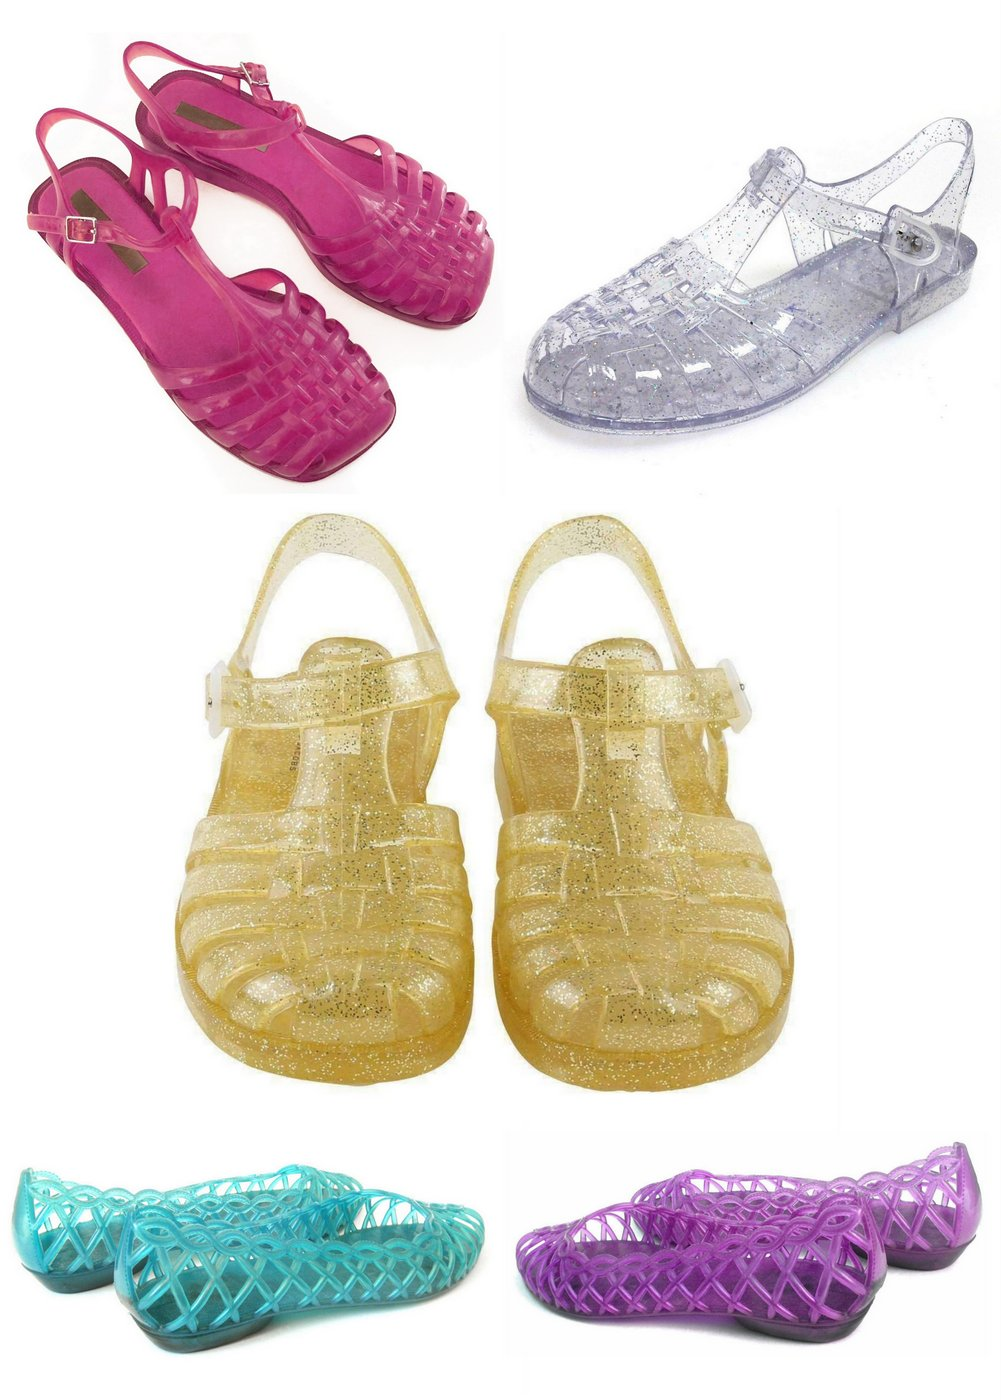 Jelly shoes retro and new